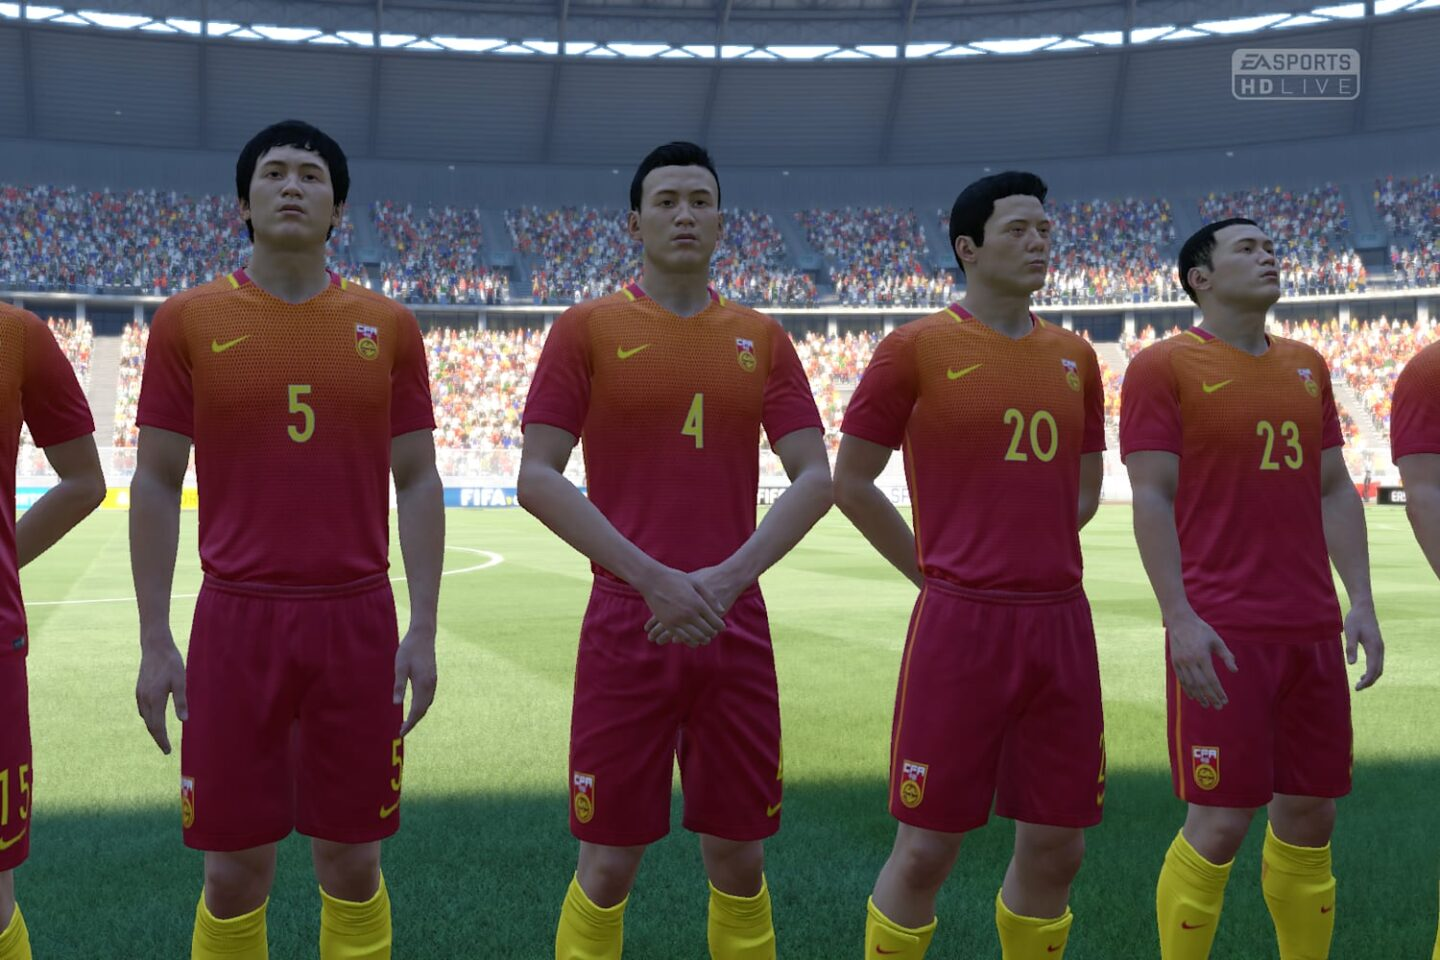 China's intense maximum of 3 hours a week practice stands them in good stead for an upset of Australia on FIFA tonight, and if not and they're losing late in the game, then a 'fuck this' and console reset